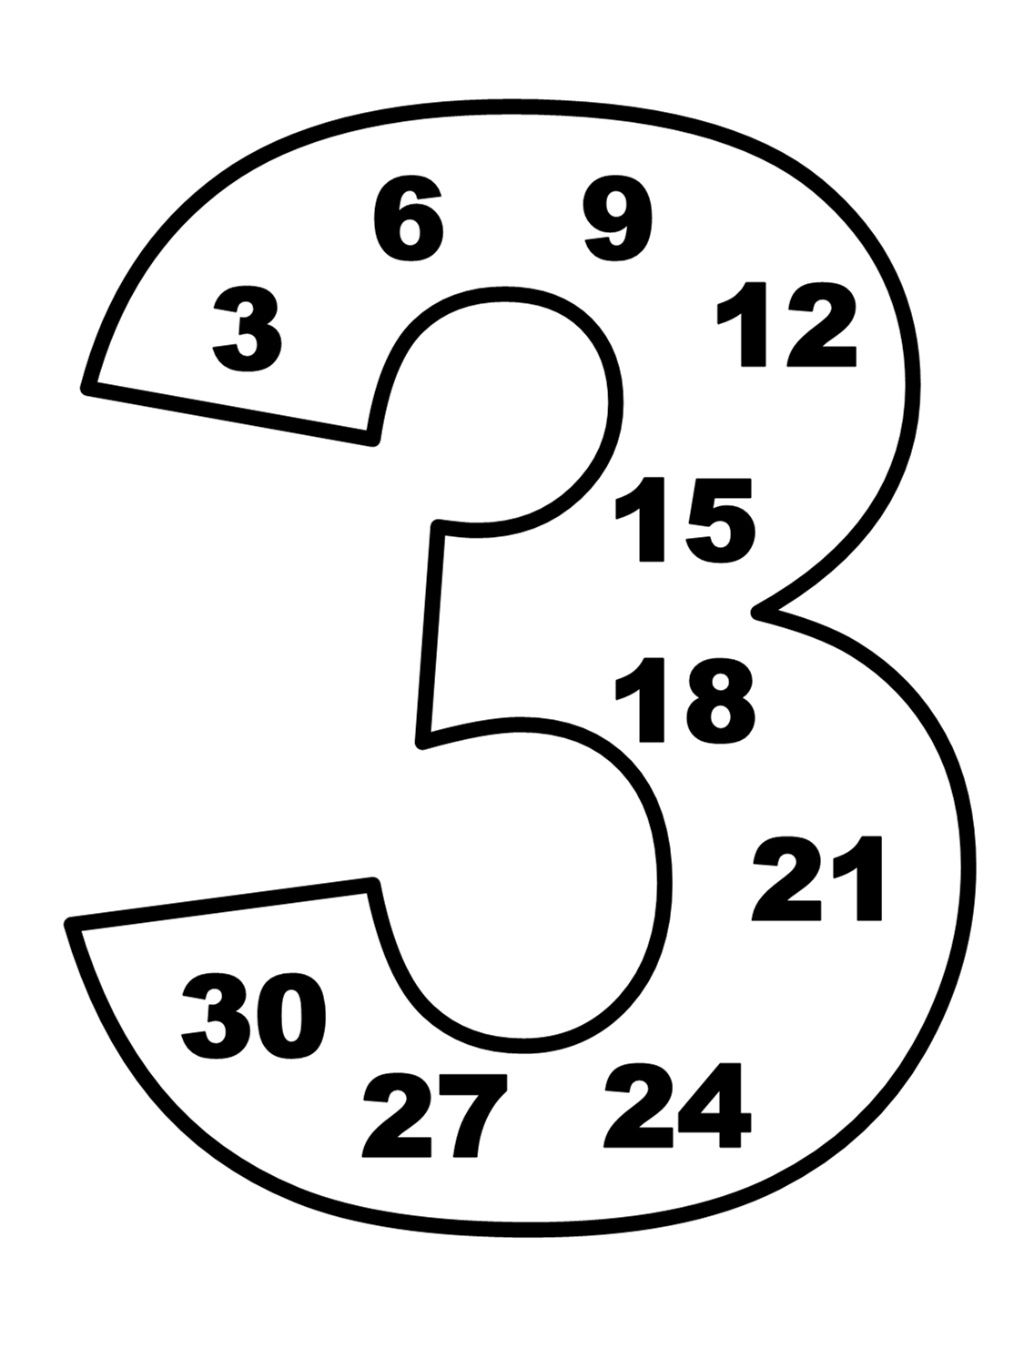 Multiplication Table In Magical Numbers